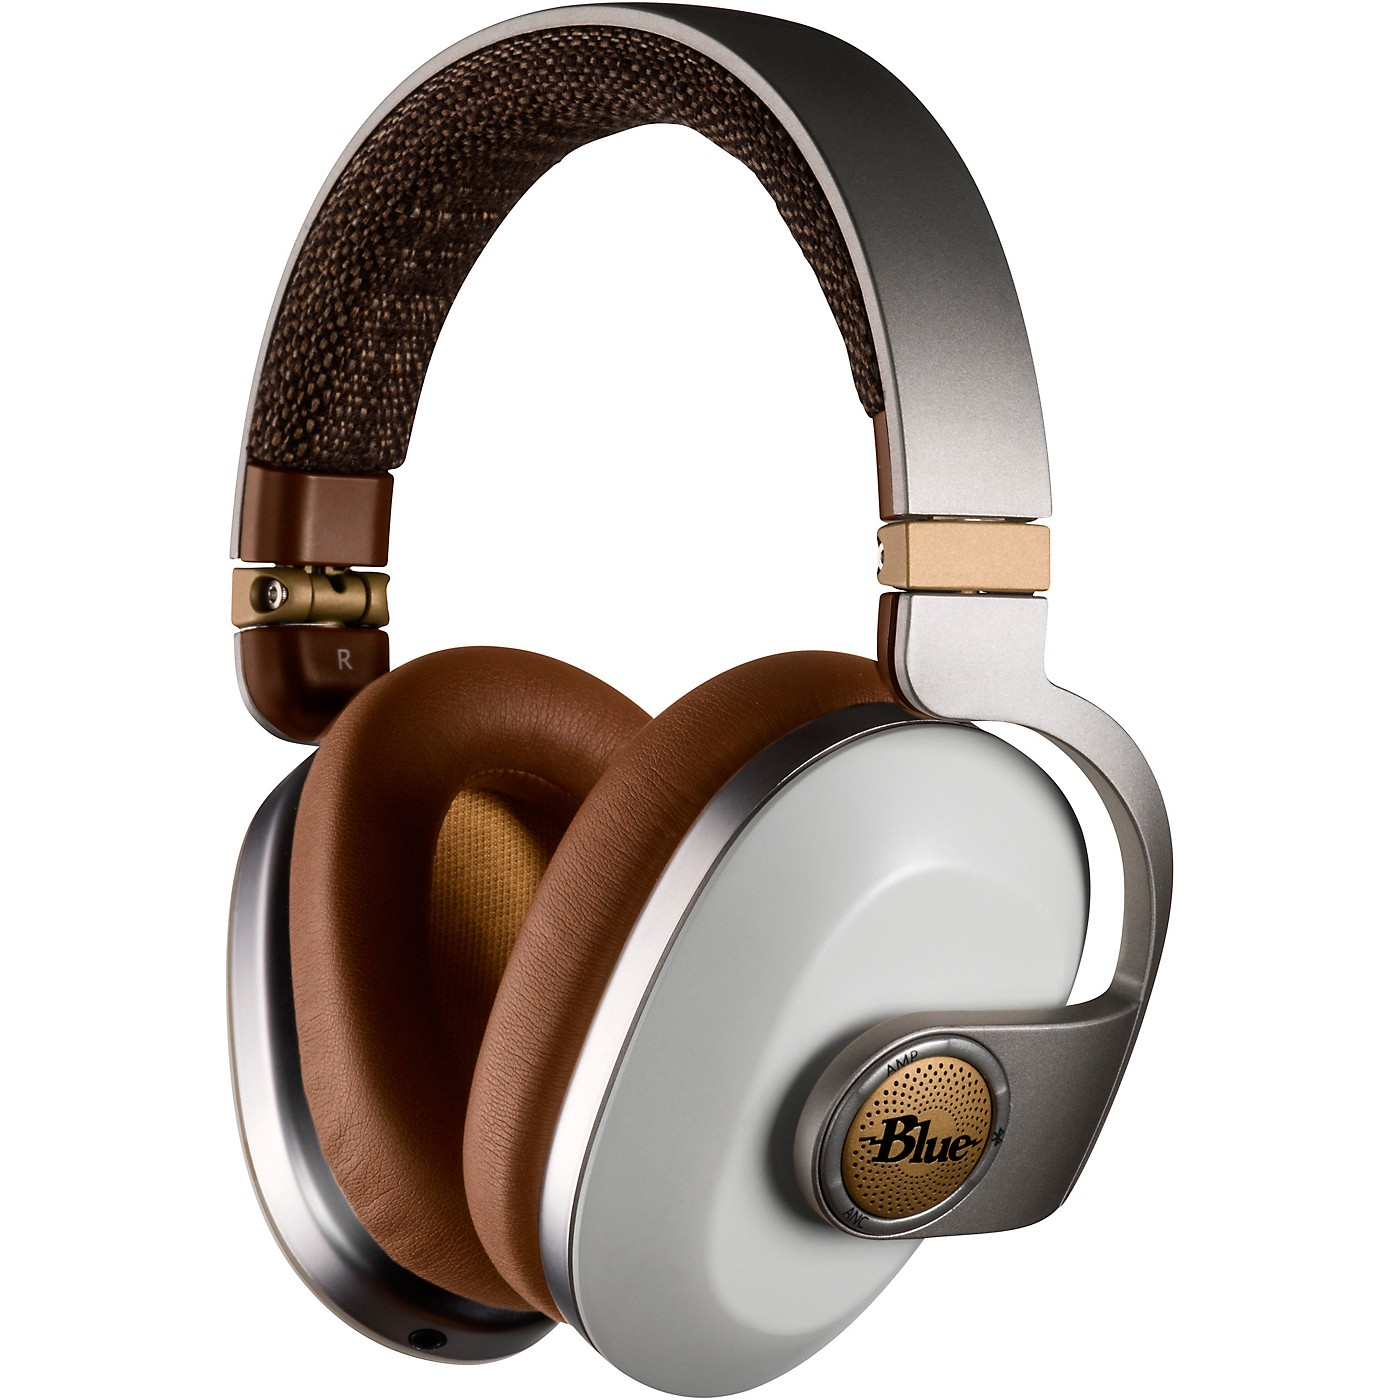 BLUE Satellite Premium Noise-Cancelling Wireless Headphones with Built-In Audiophile Amp thumbnail